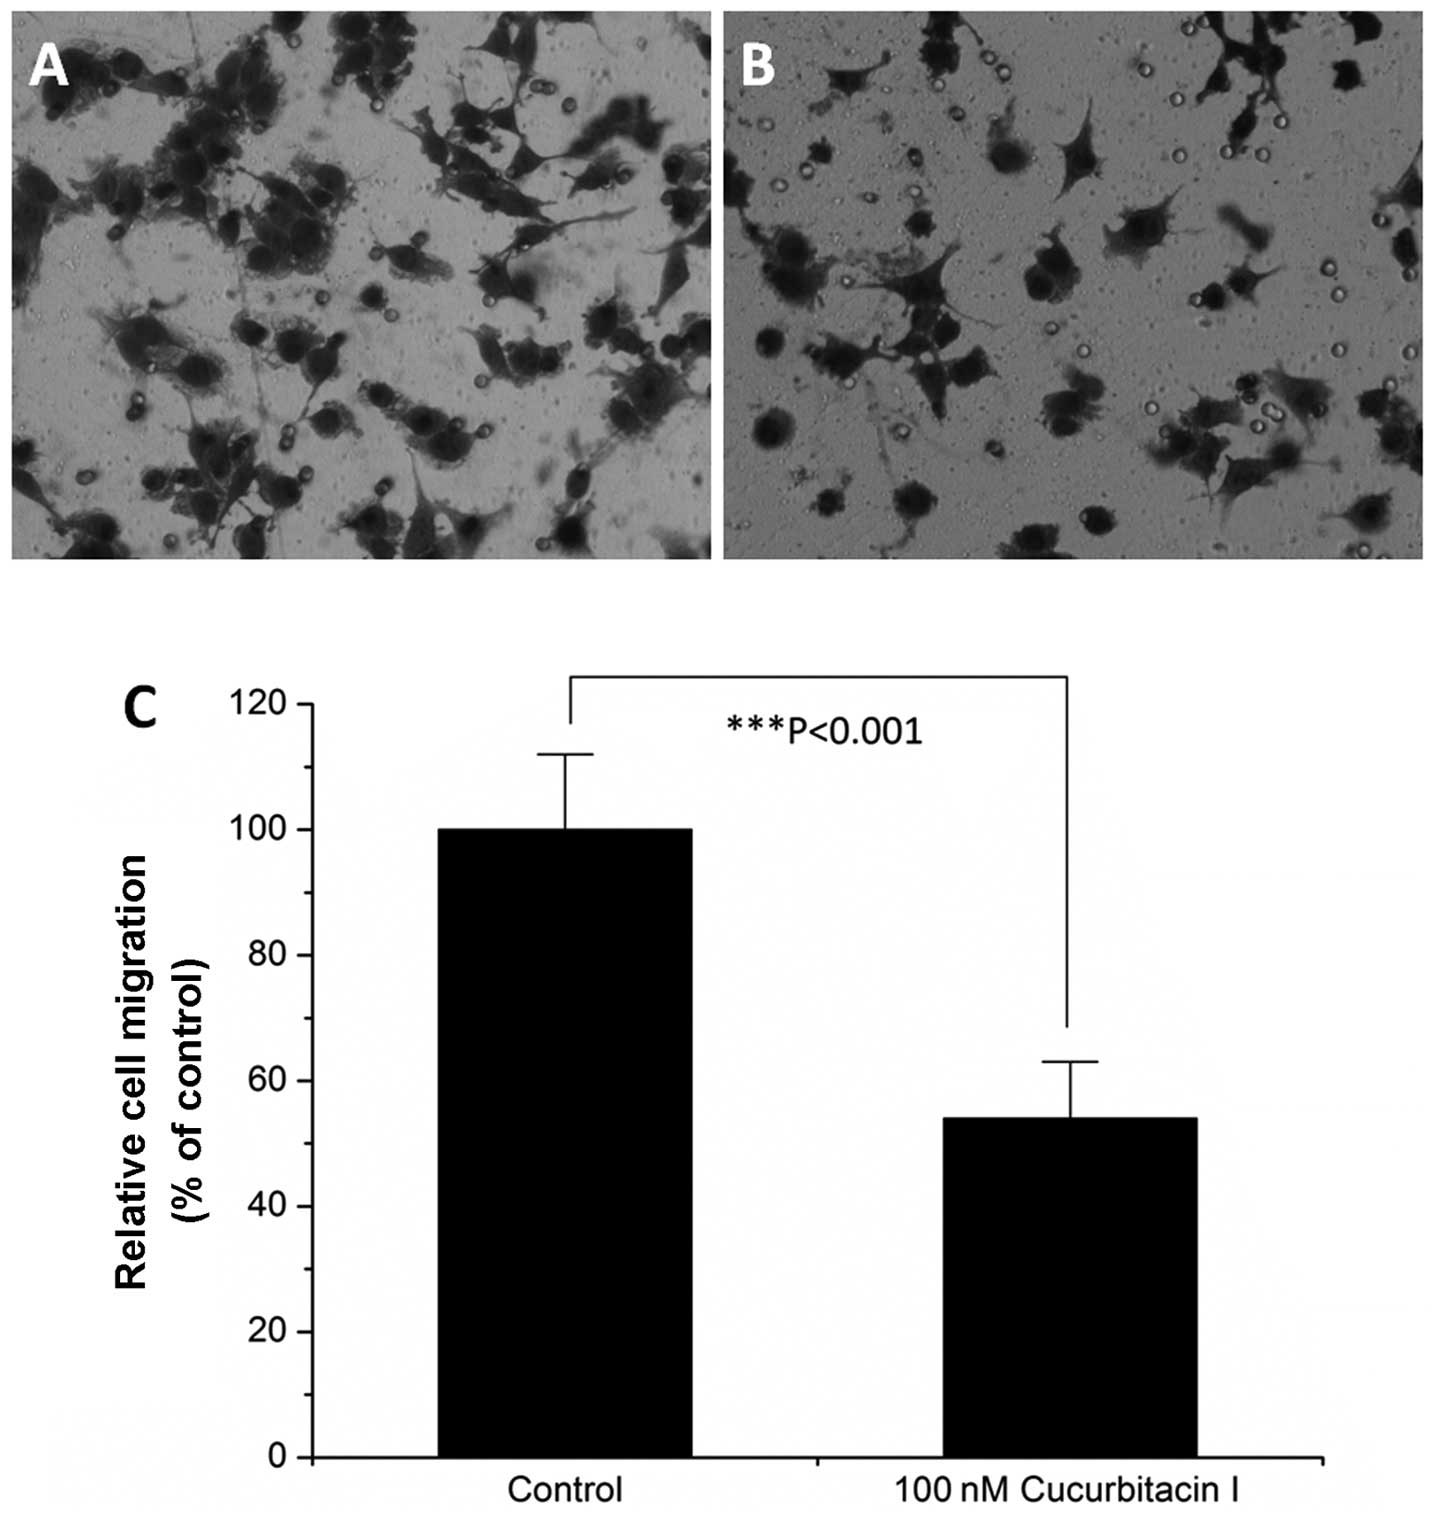 Cucurbitacin I inhibits cell migration and invasion and